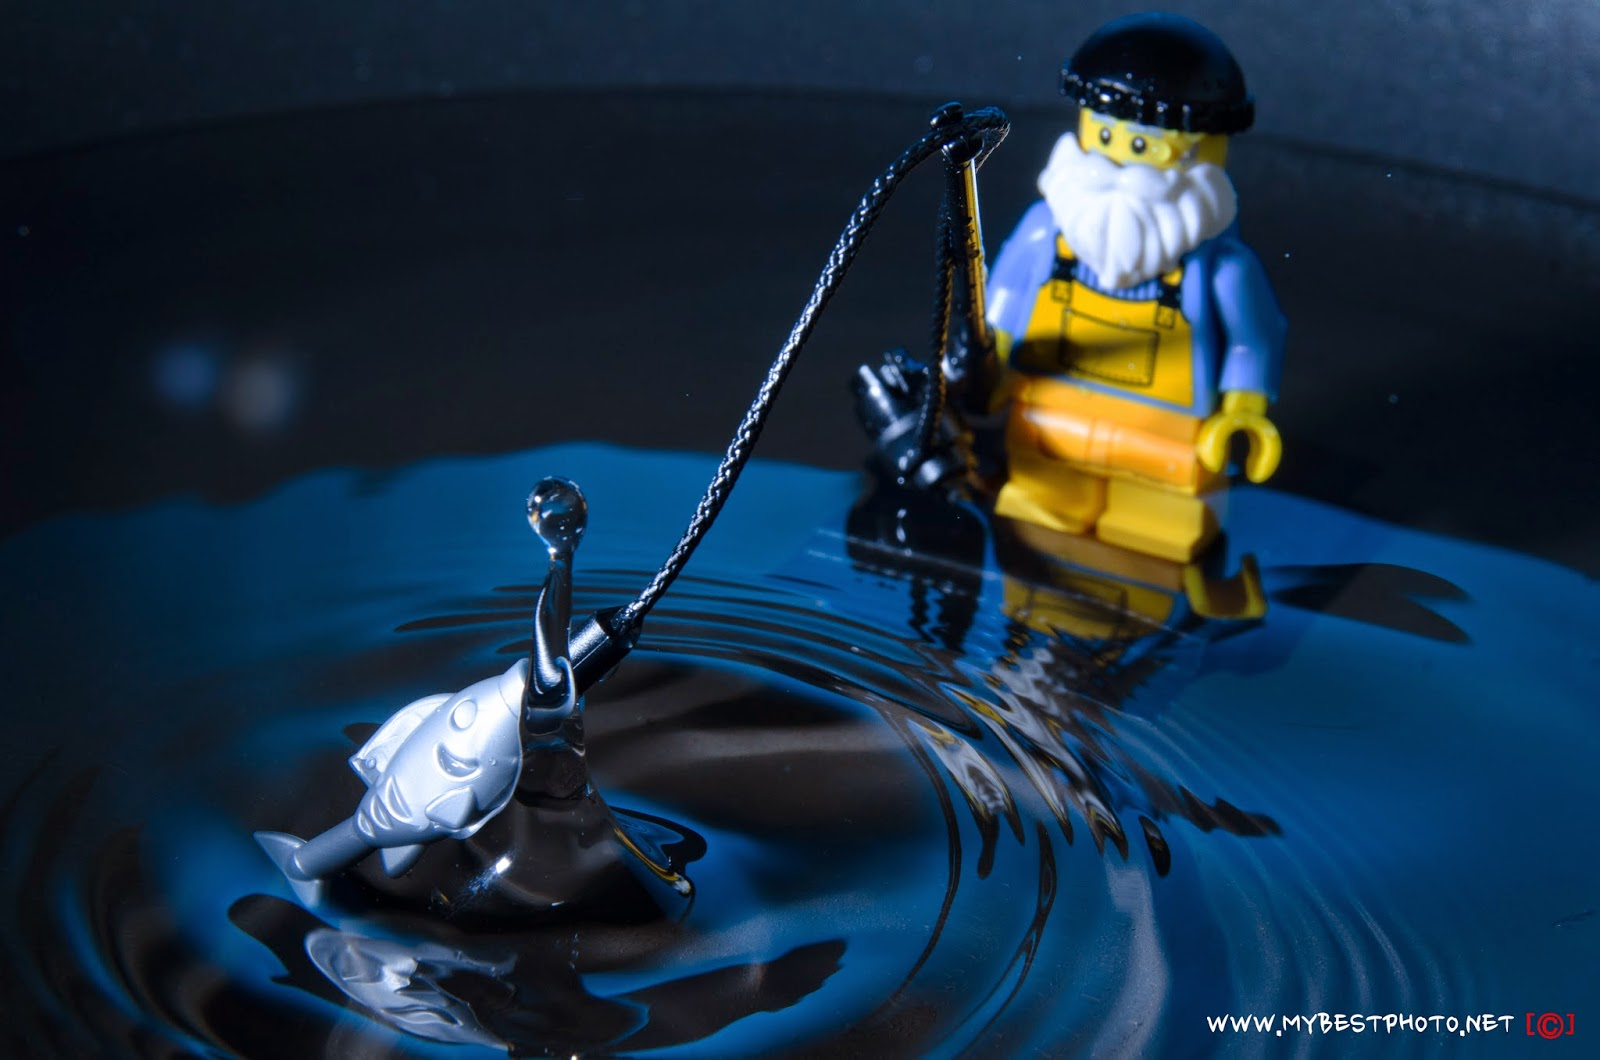 Lego Minifigure Series 3 Fisherman - Wallpapers